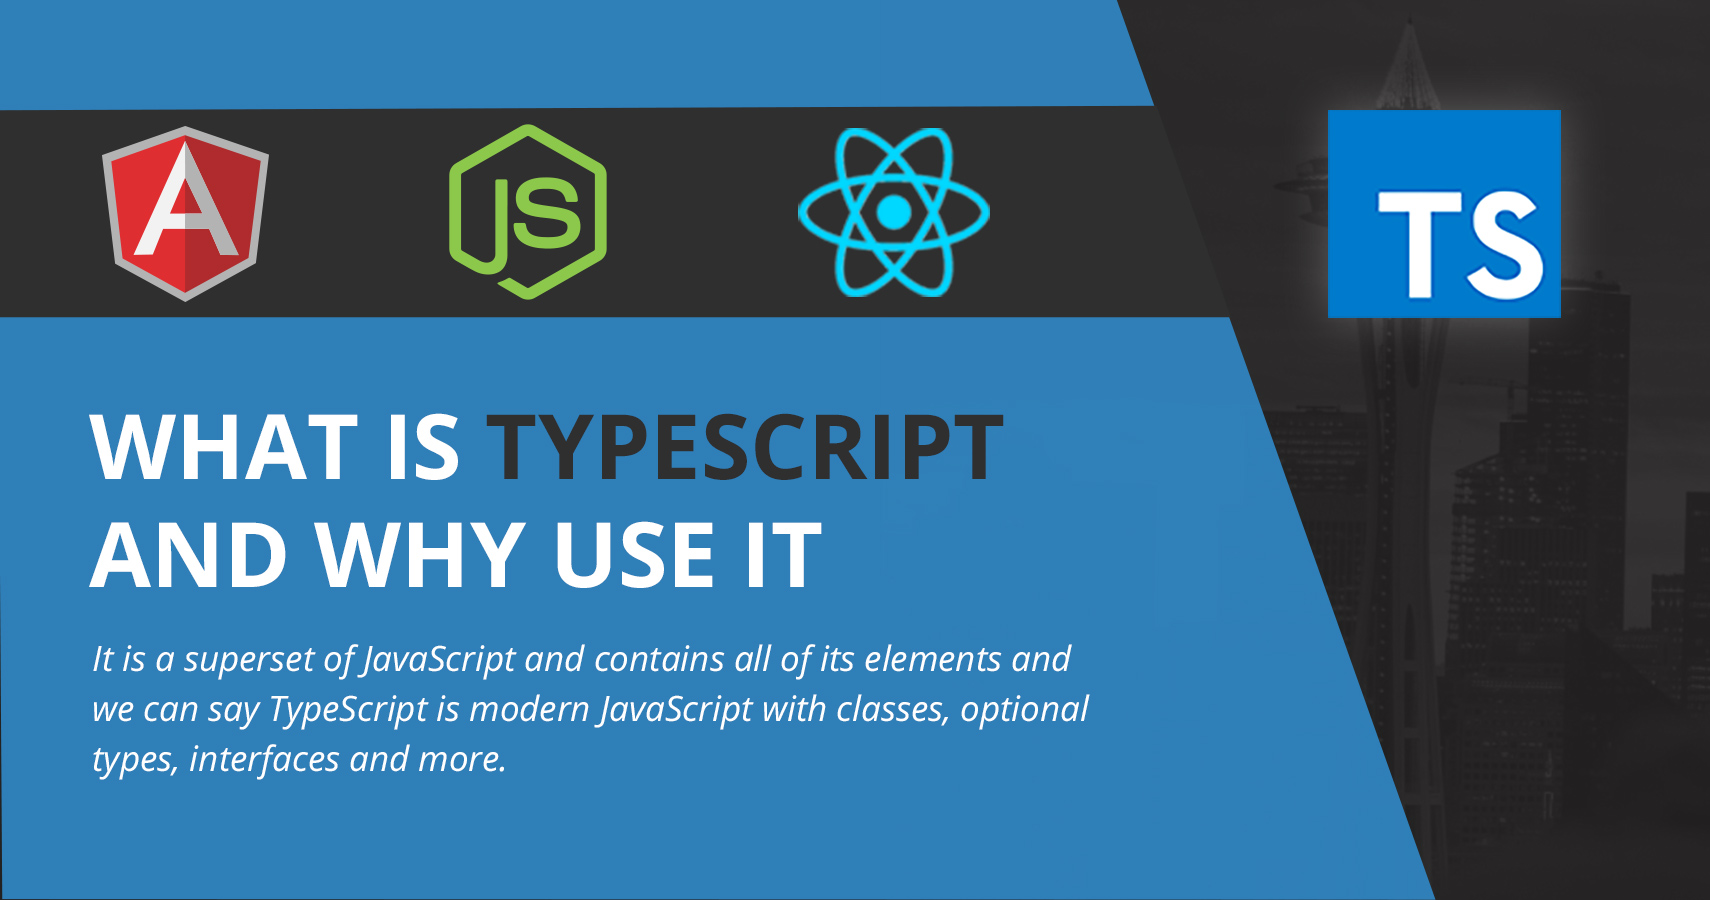 Why use TypeScript in 2019 in Web Application